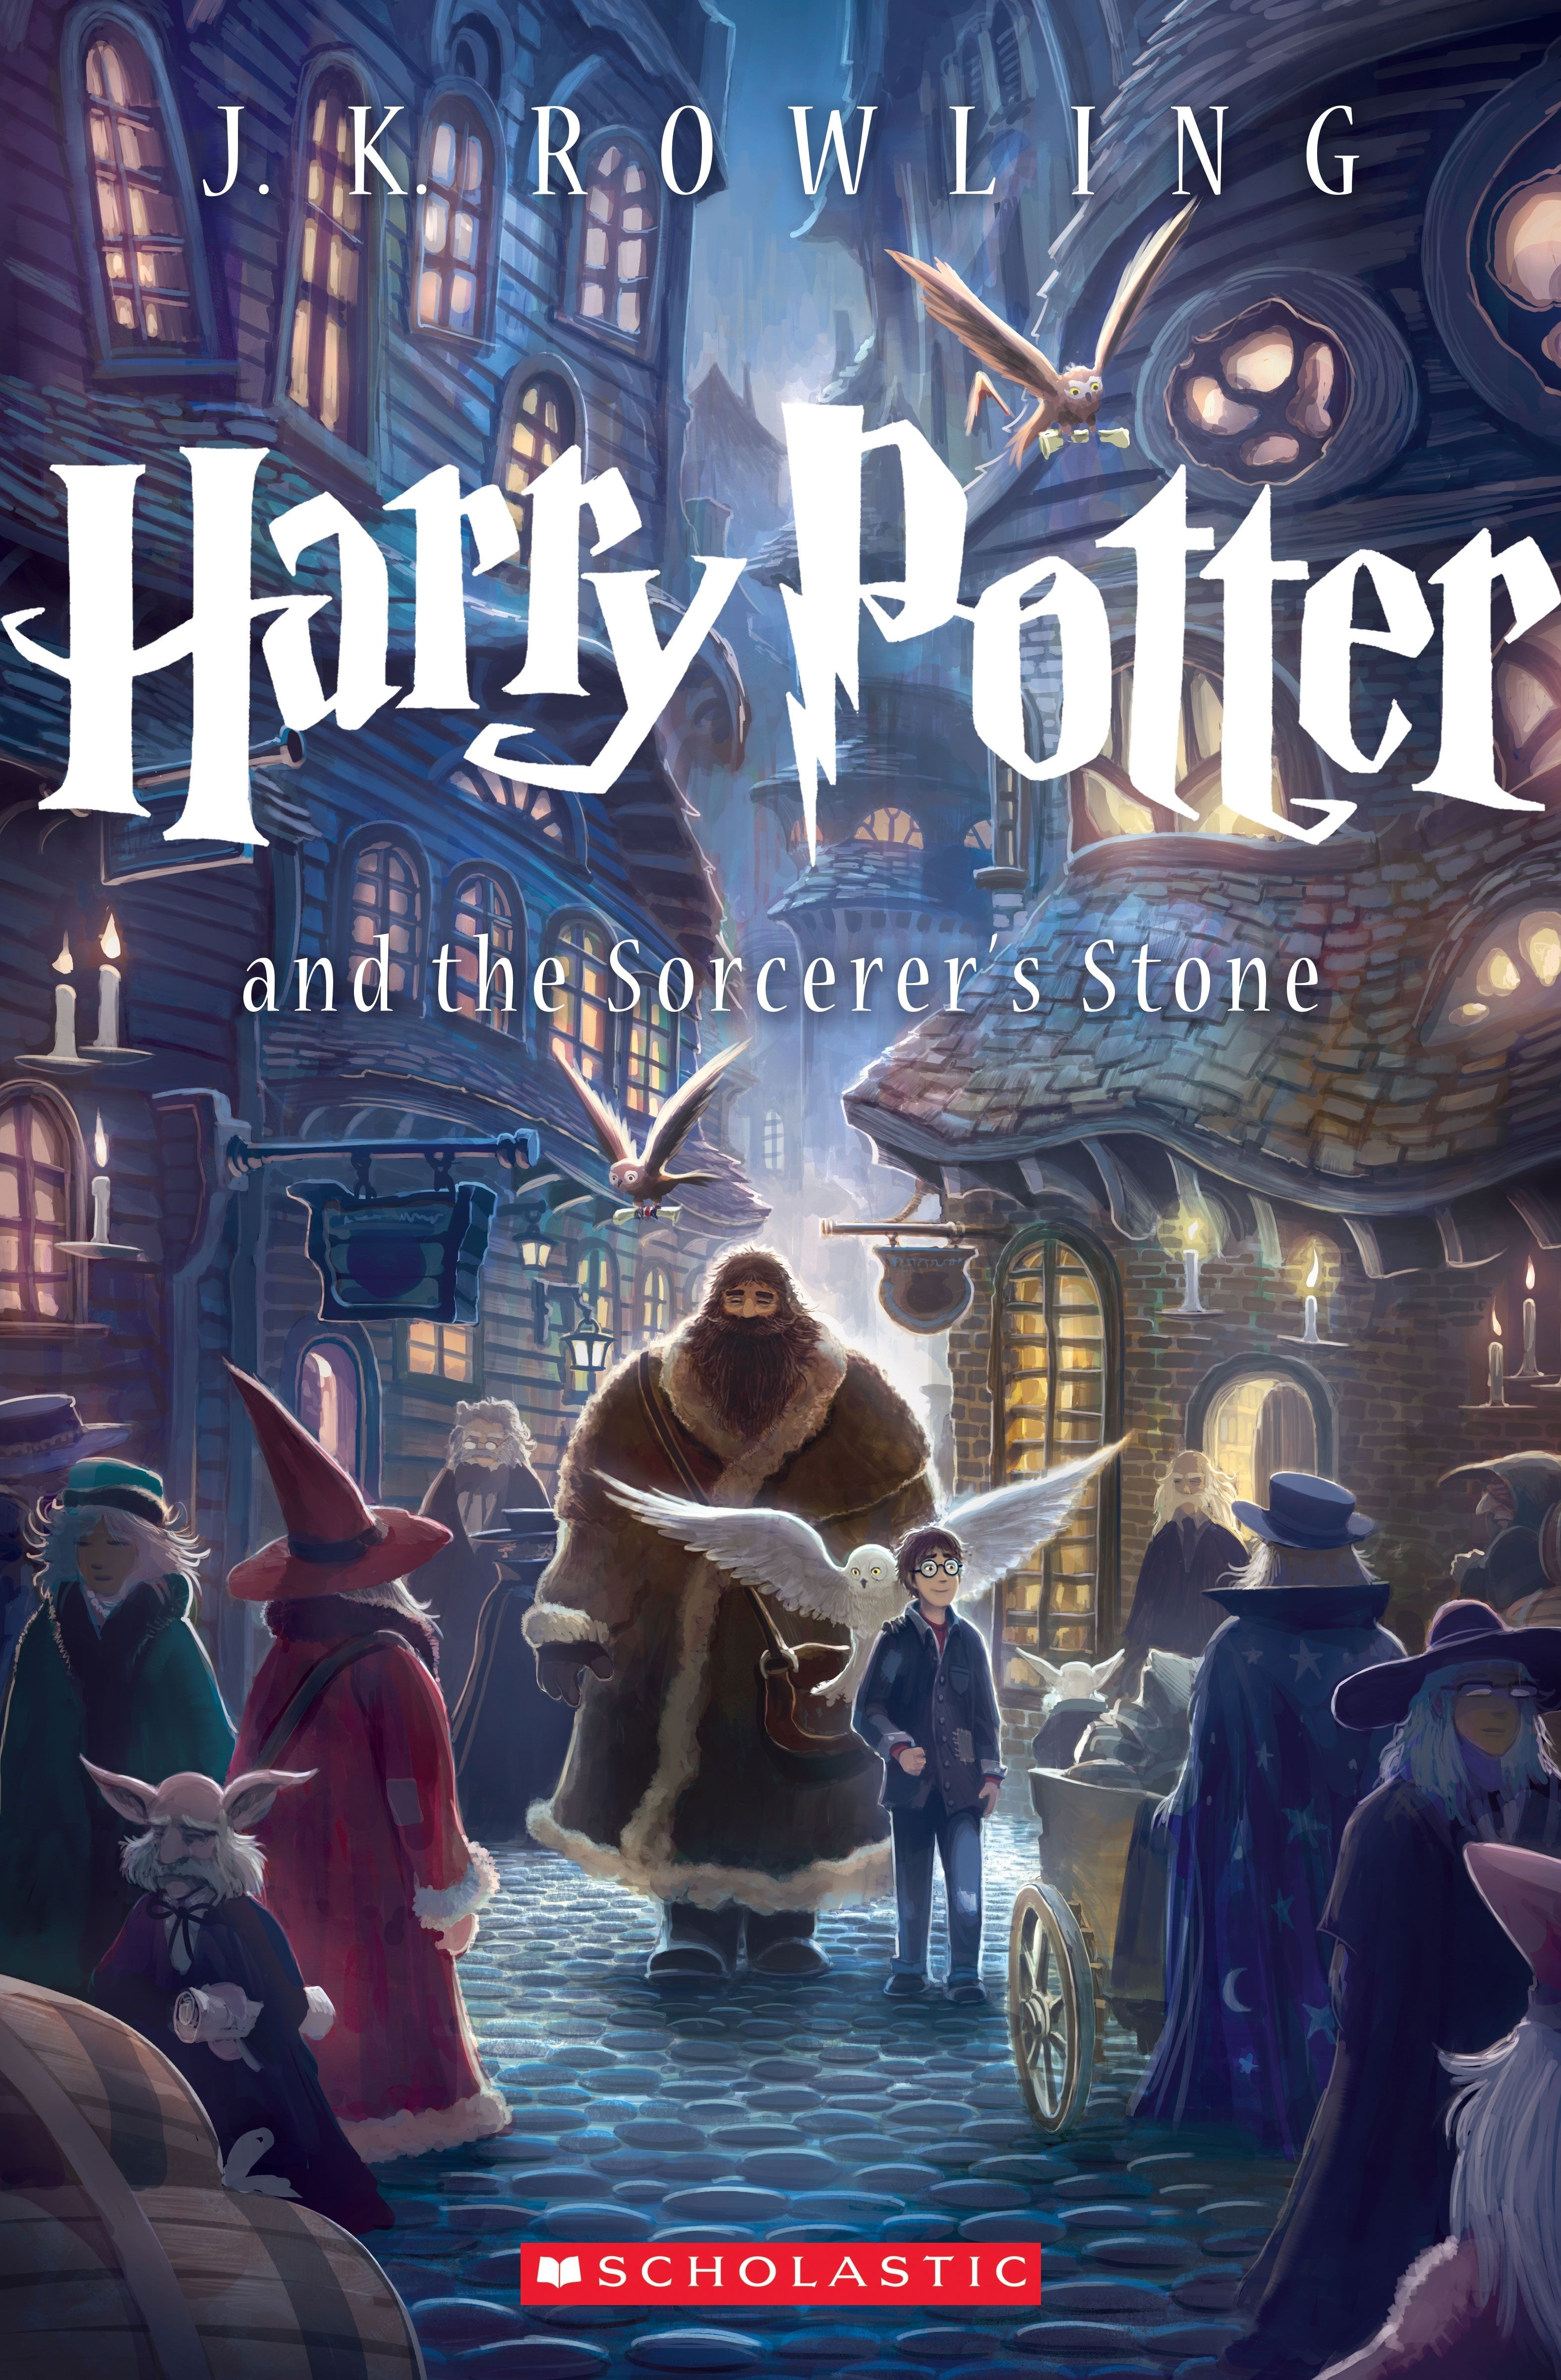 harry-potter-and-the-sorcerers-stone-revamped-cover-j.k.-rowling.jpg (3149×4801)